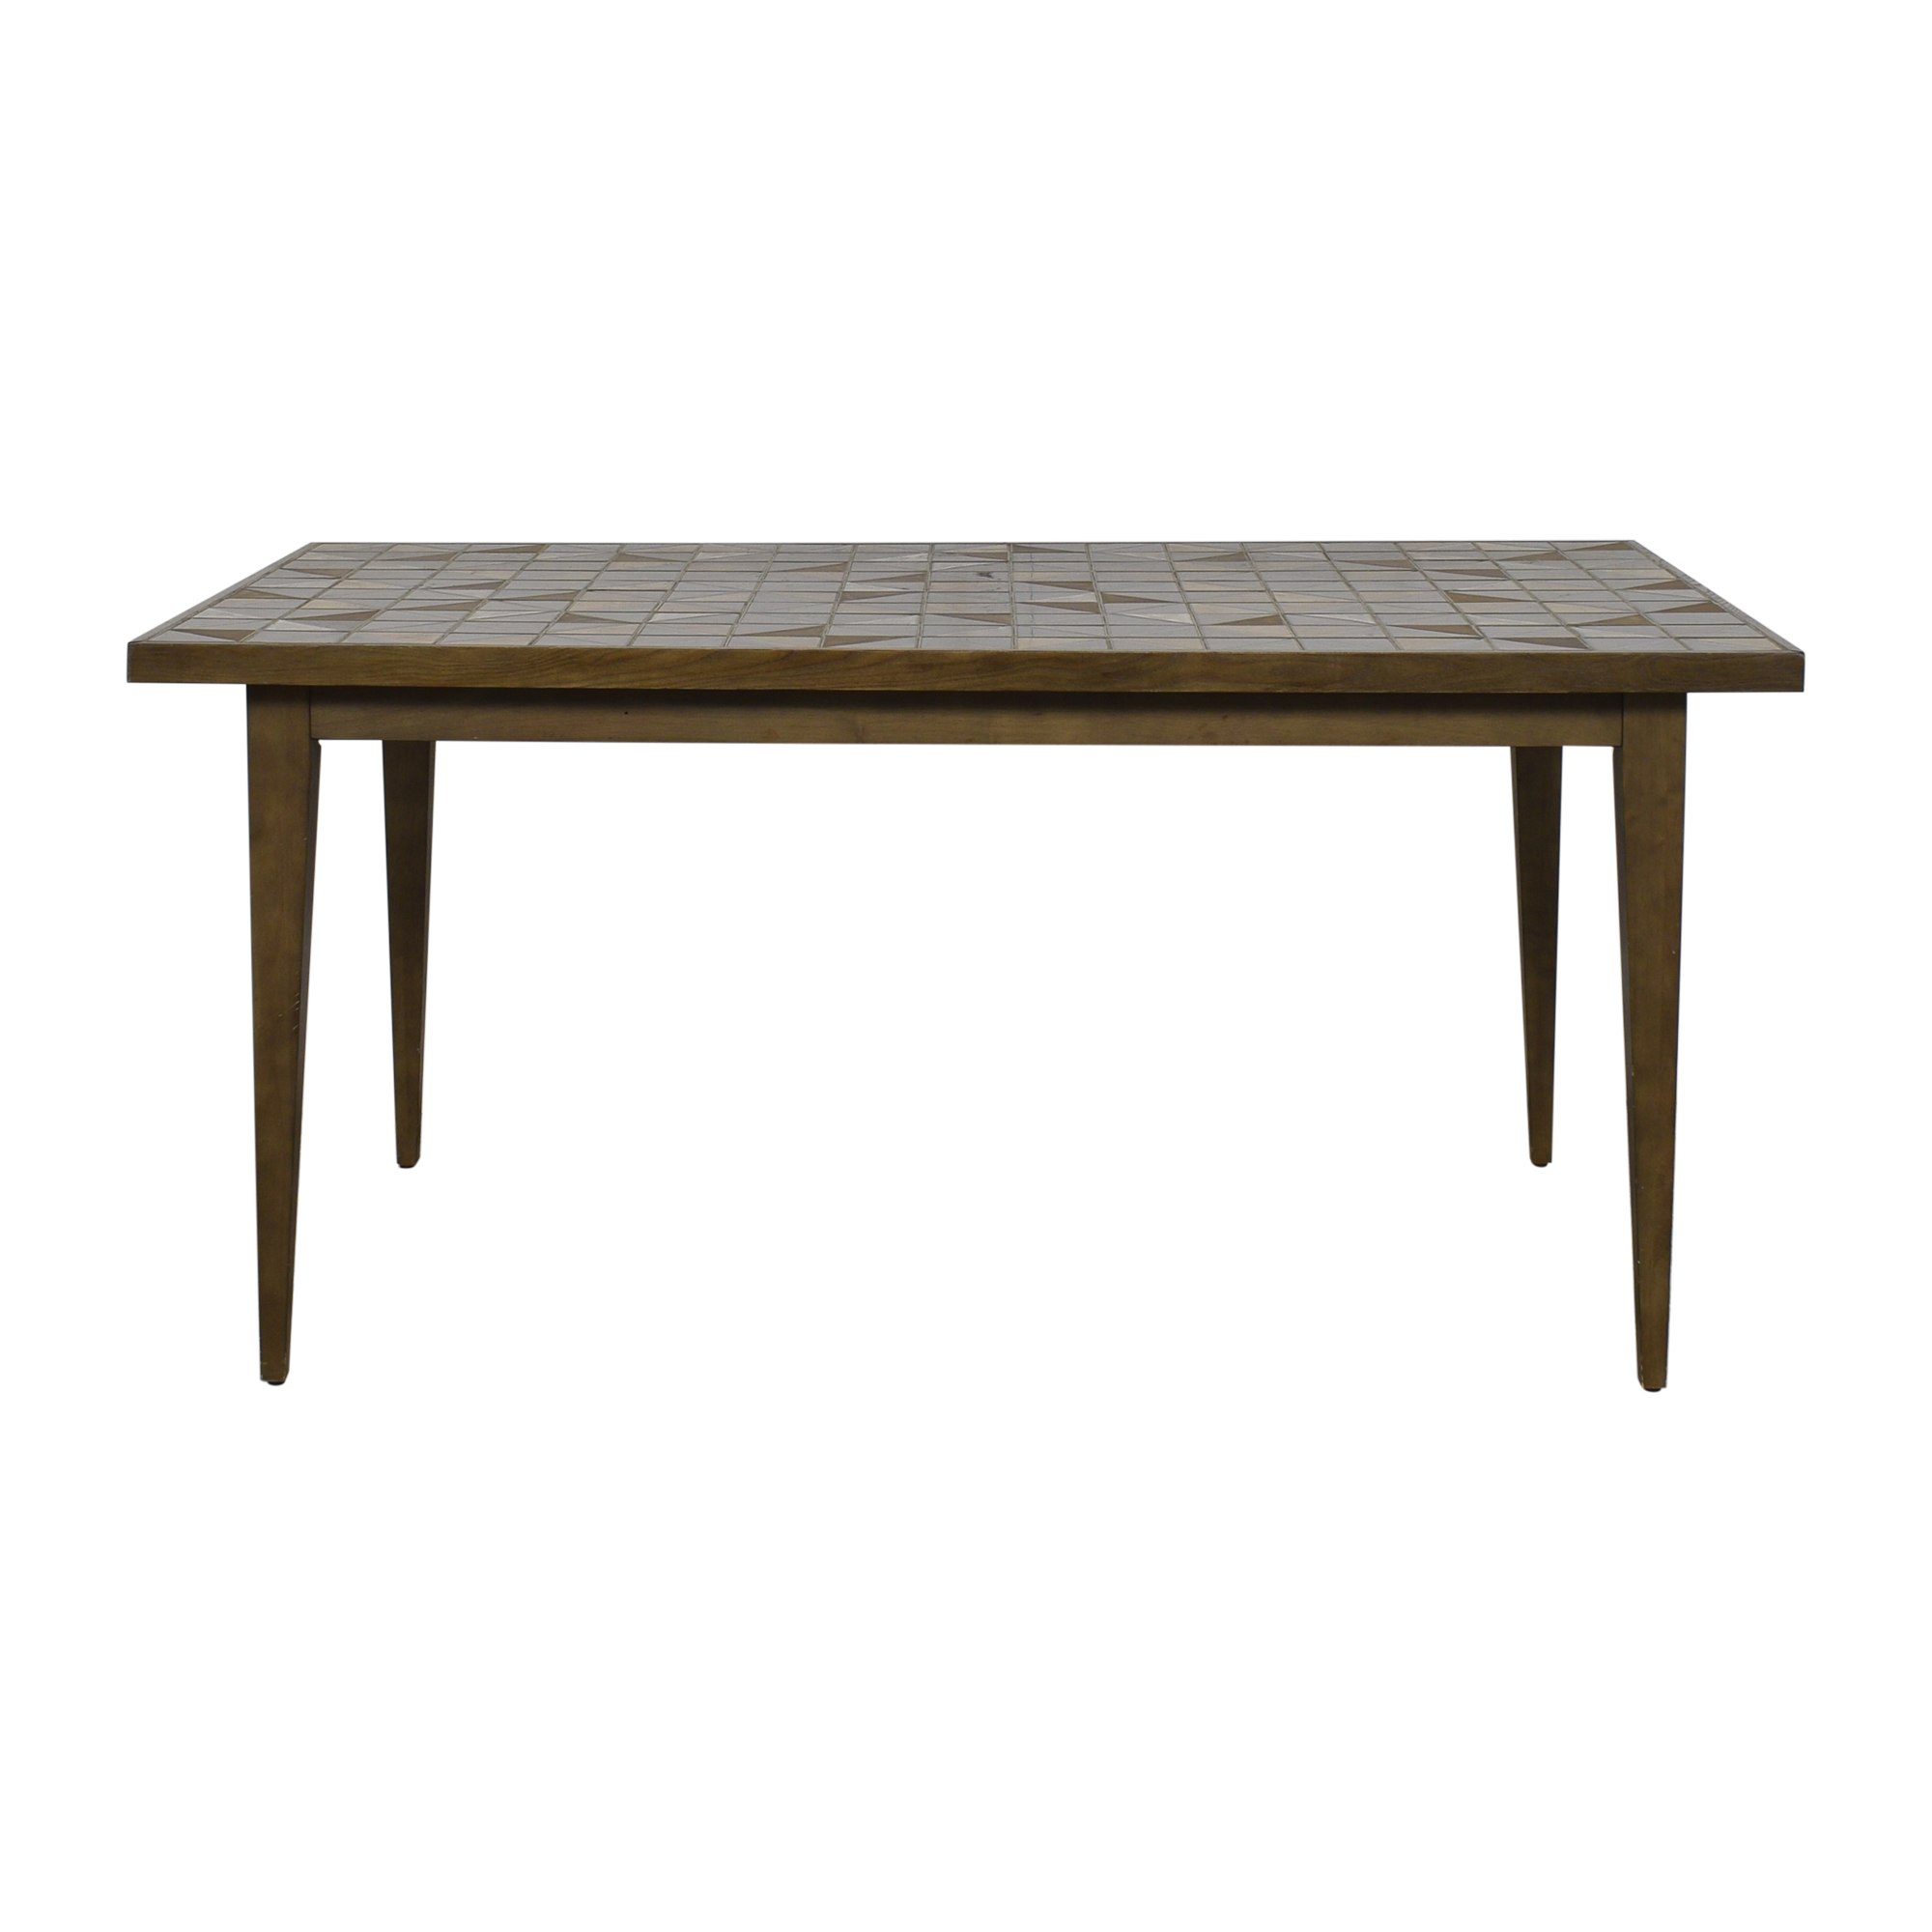 buy West Elm Lubna Chowdhary Tiled Dining Table West Elm